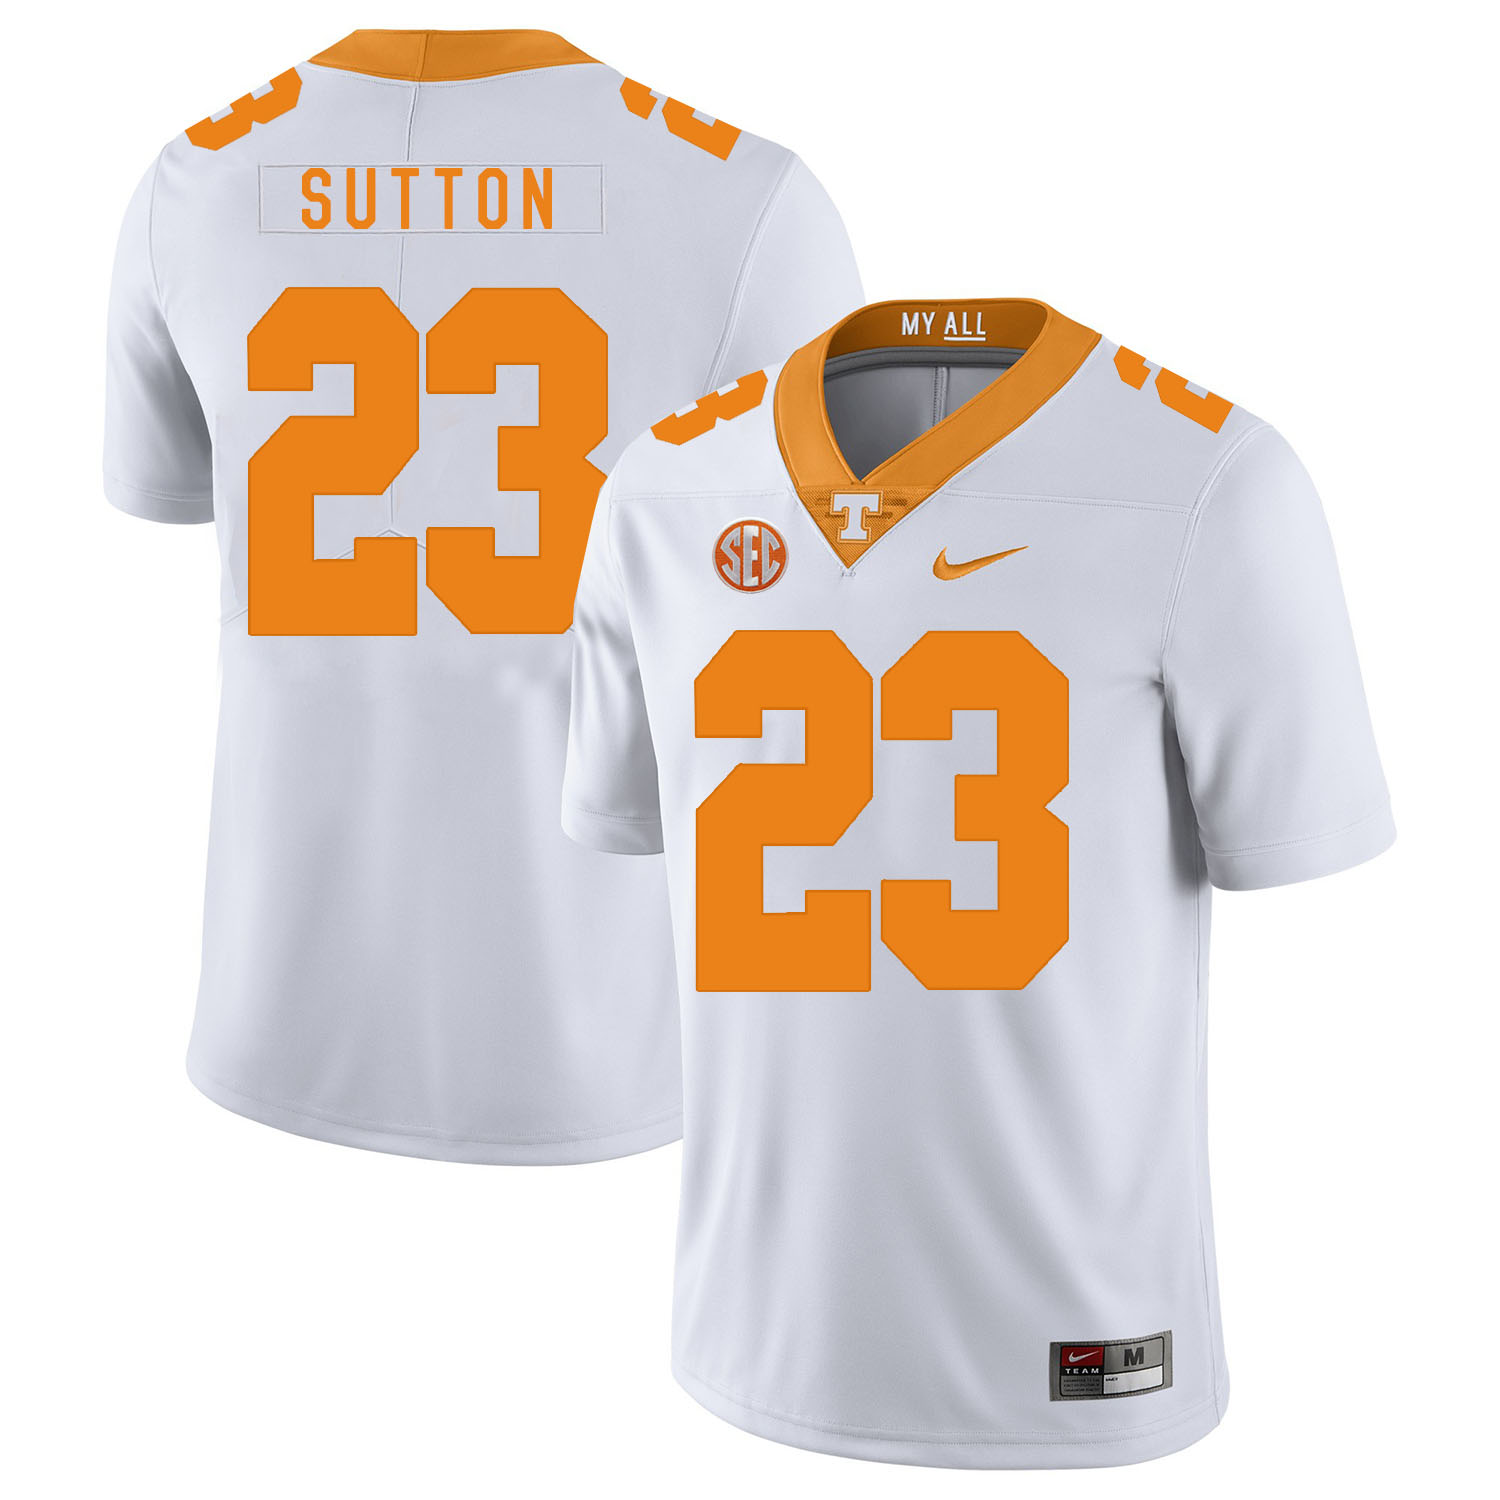 Tennessee Volunteers 23 Cameron Sutton White Nike College Football Jersey